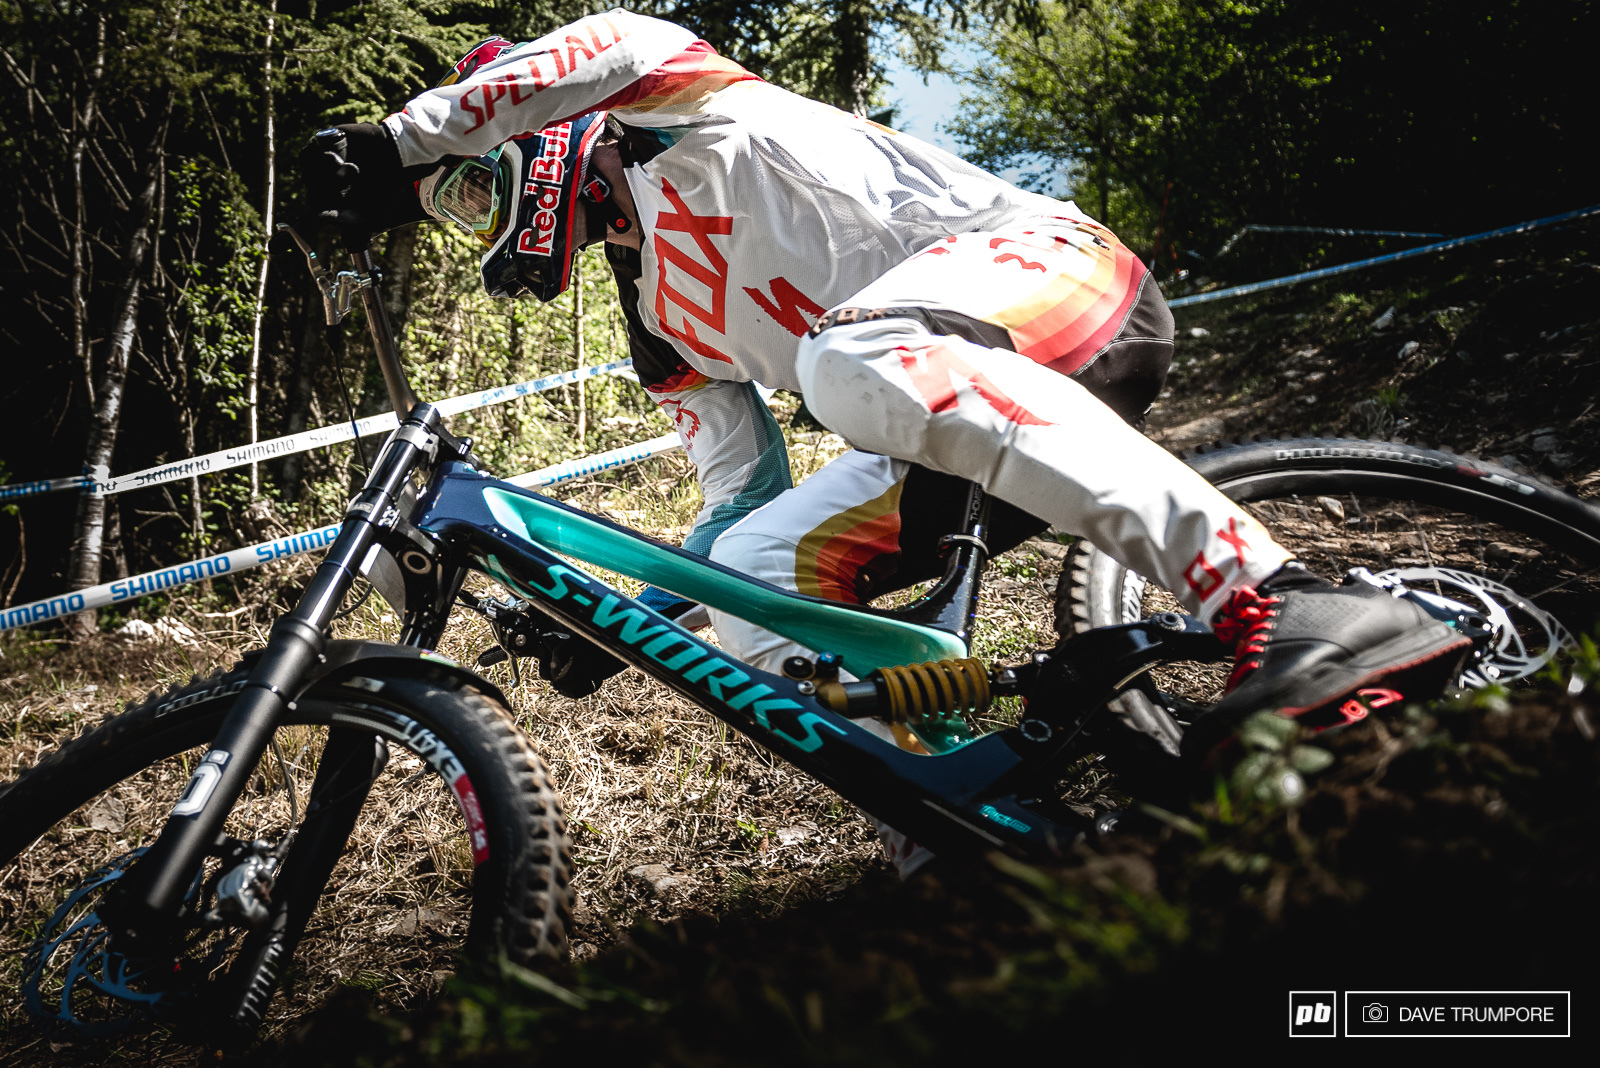 Loic Bruni was looking fast and comfortable all day.